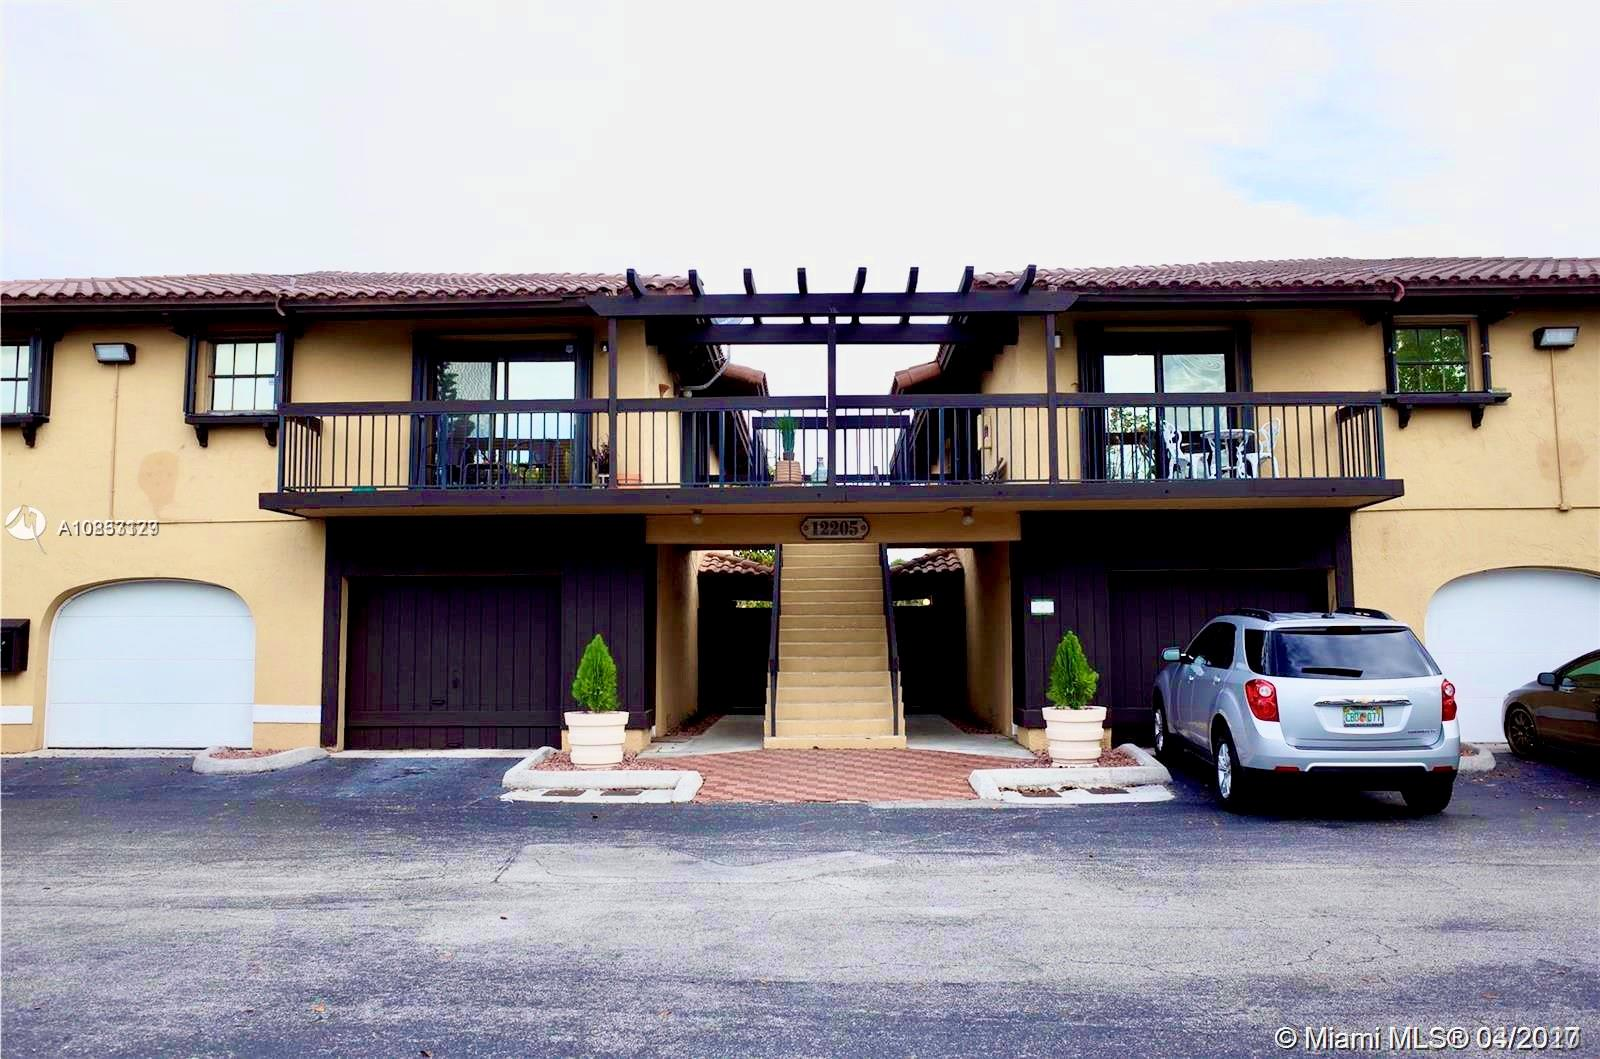 2 bedroom 2 bathroom Condo including Garage and 2 parking spaces. Fully tiled with stainless steel appliances, wood cabinets, marble baths, walk in closet, laundry room and accordion shutters. Located in the highly sought after private community Paseos Castellanos. Close to FIU, shops, restaurants and major highways. Pet friendly, close to parks.